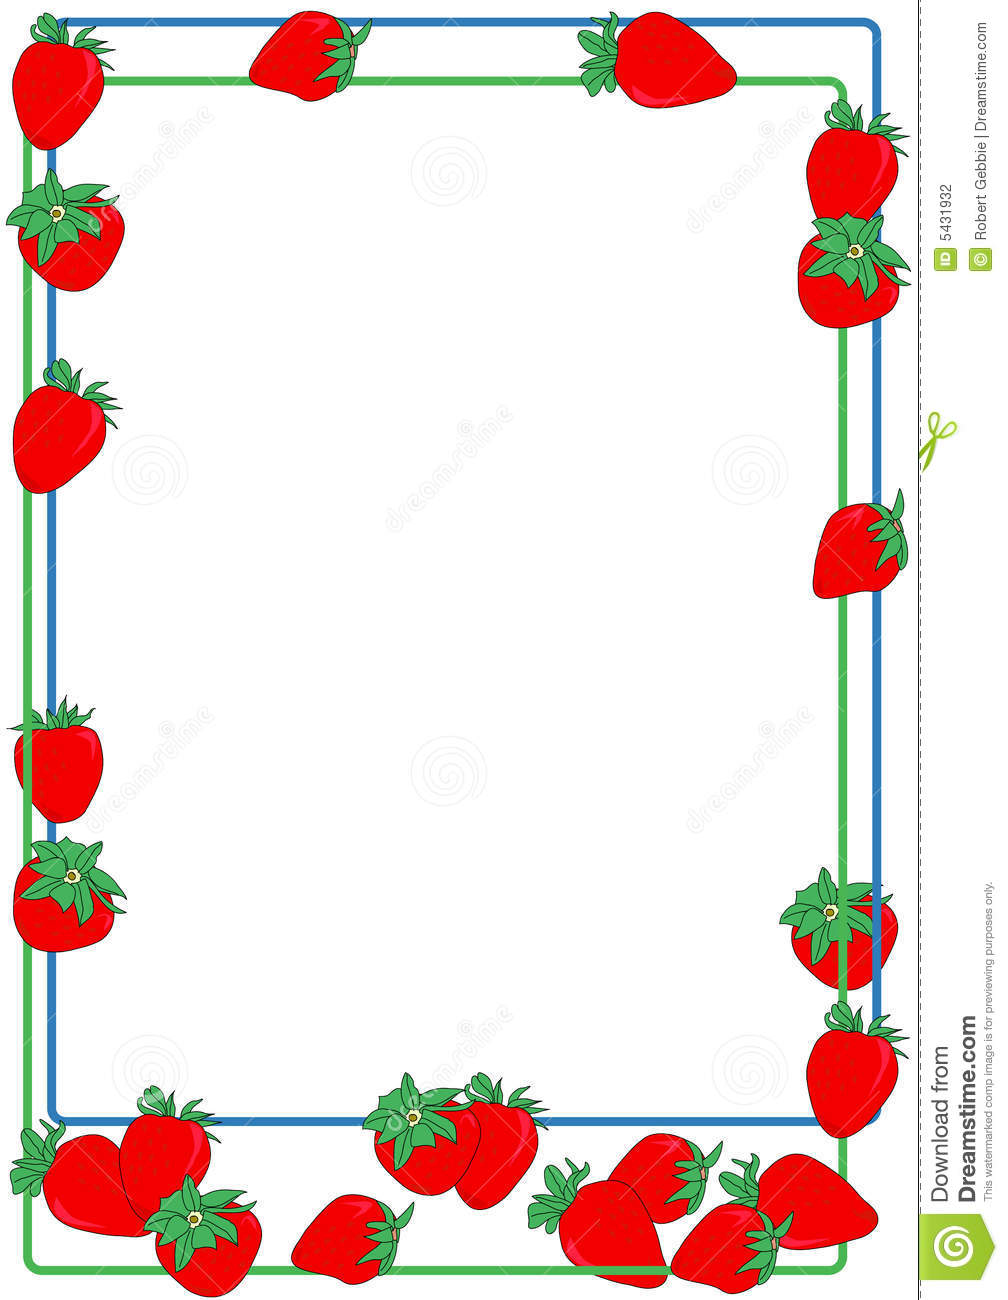 Frame clipart cake Panda Clipart Clipart Images strawberry%20clipart%20border